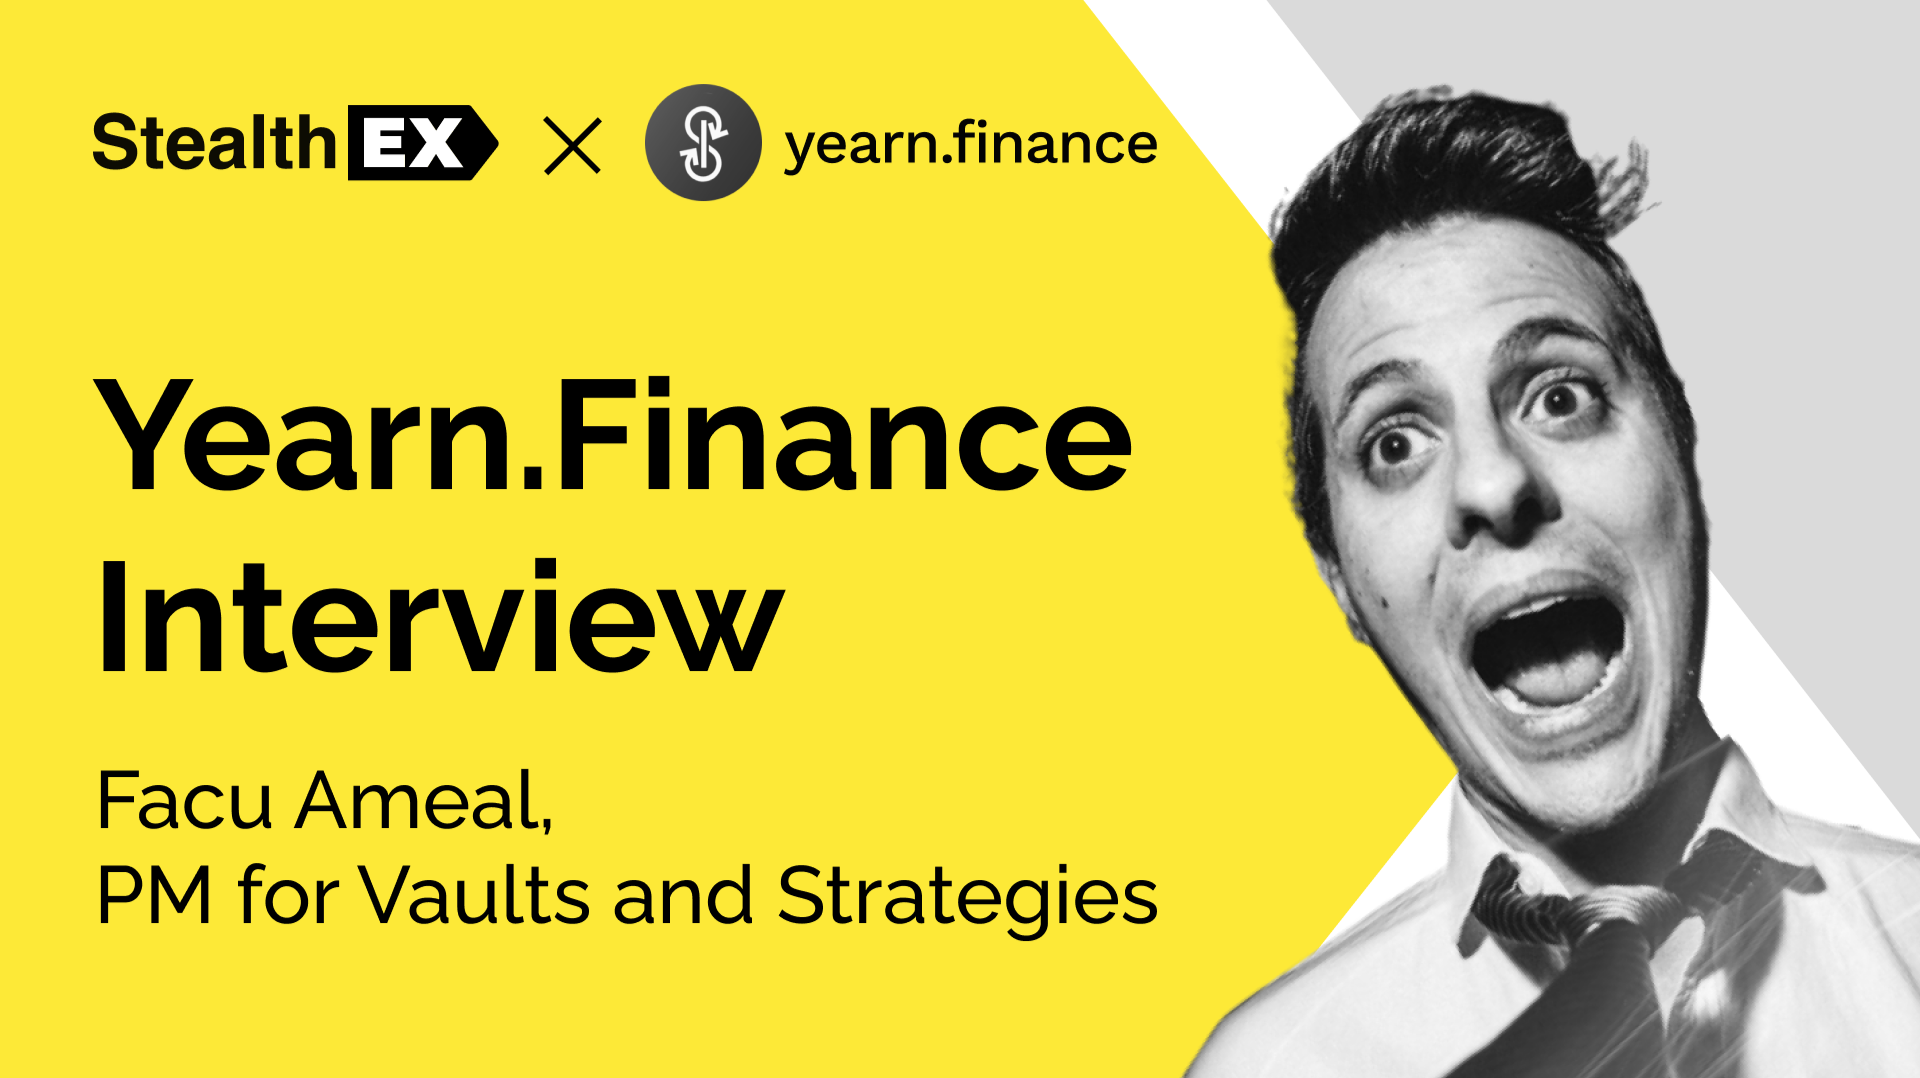 StealthEX Interview With Facu Ameal, Yearn.Finance PM for Vaults and Strategies